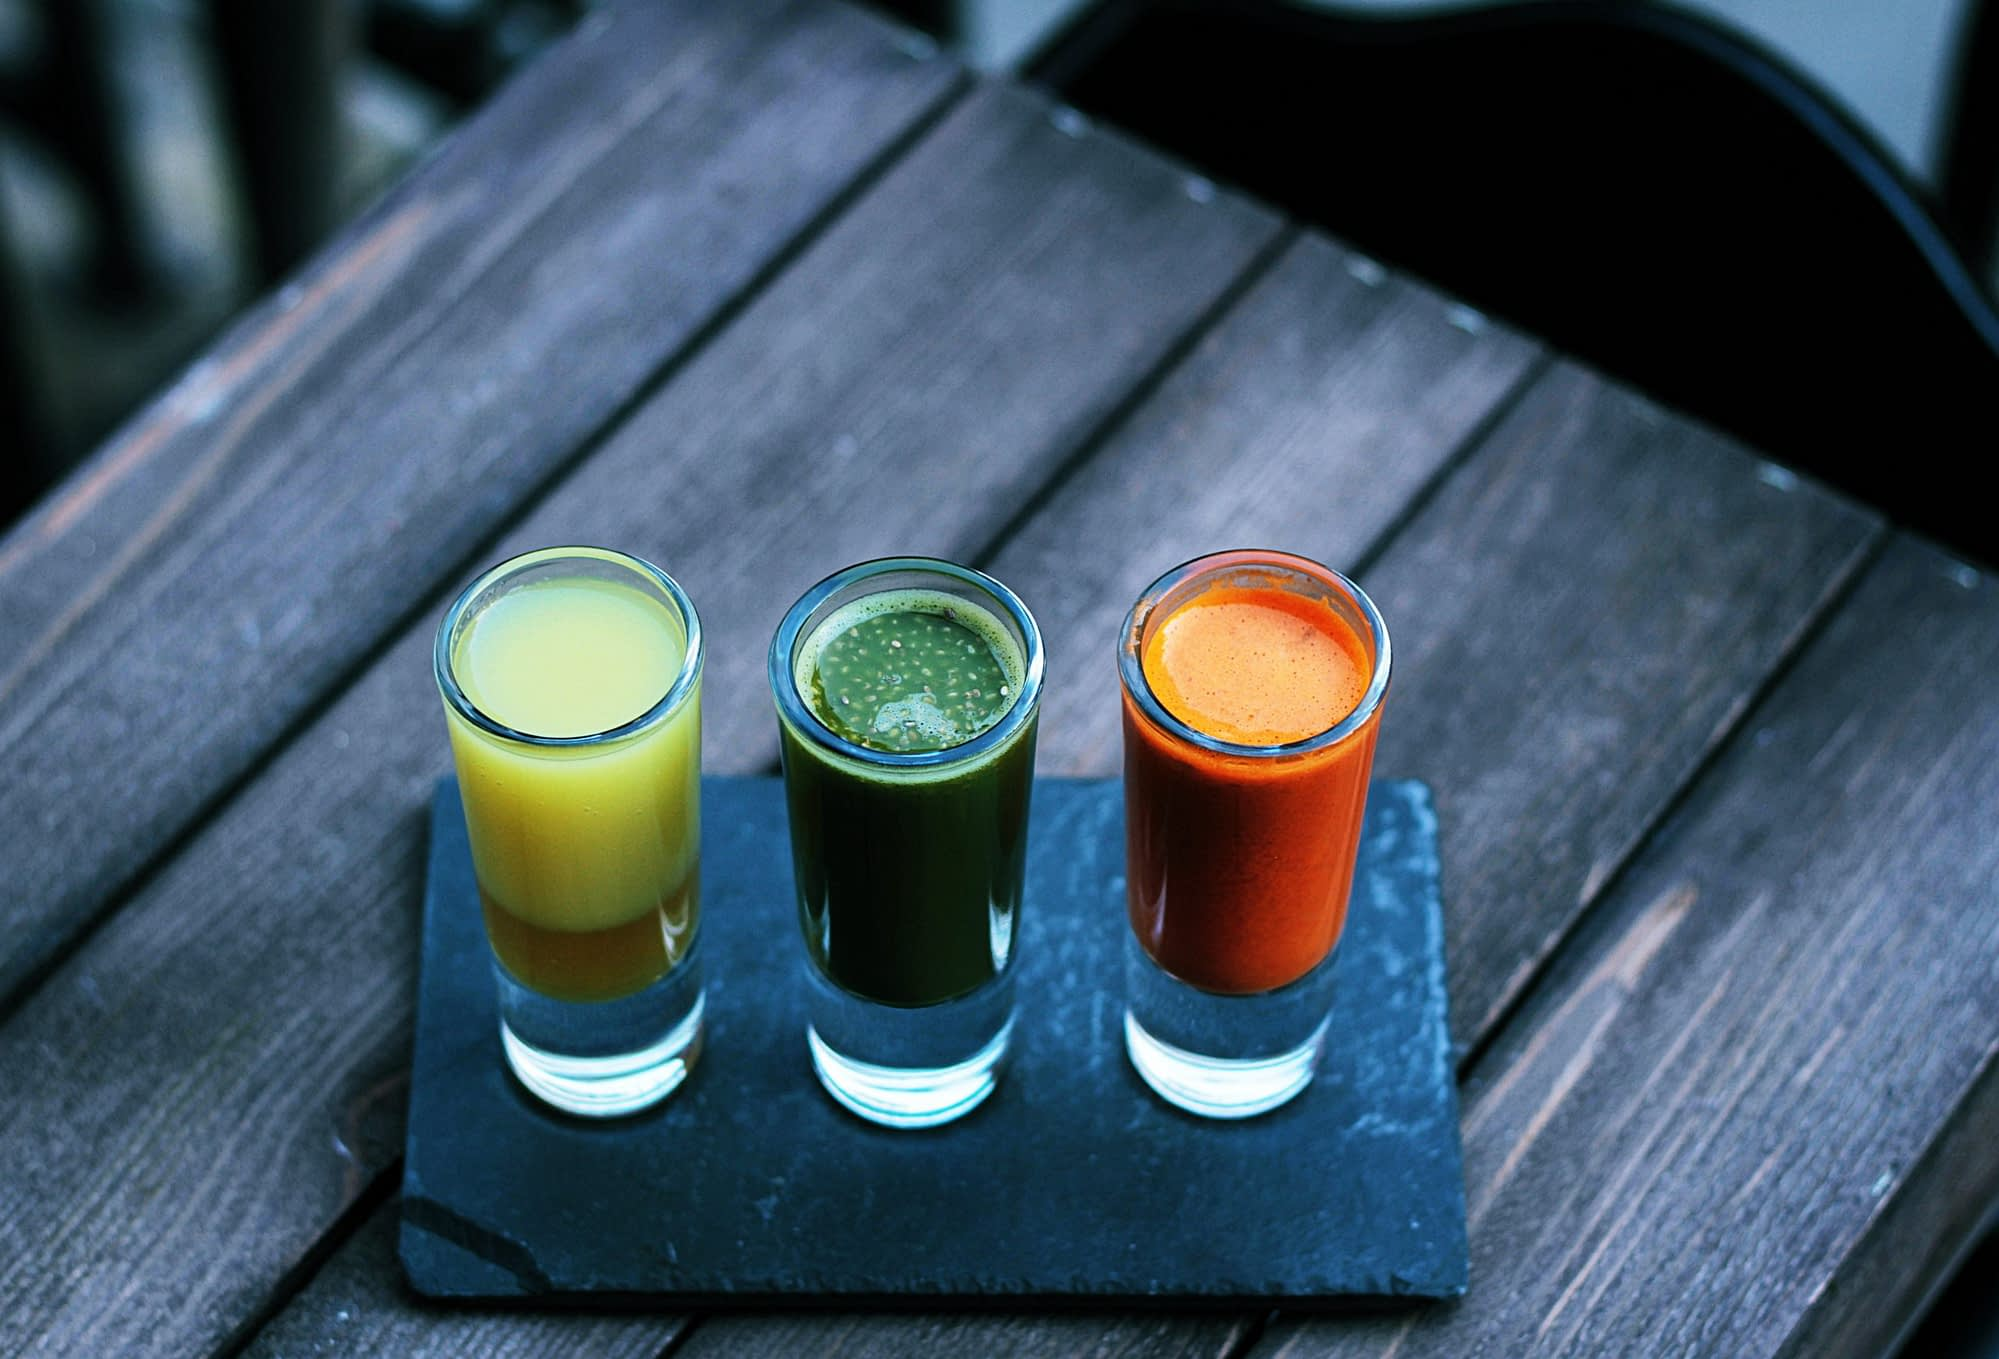 Before partaking in any diy juice cleanse regimen, you must become aware that while juices have health benefits, they're not nutritionally balanced, thus, shouldn't be used as meal replacements.